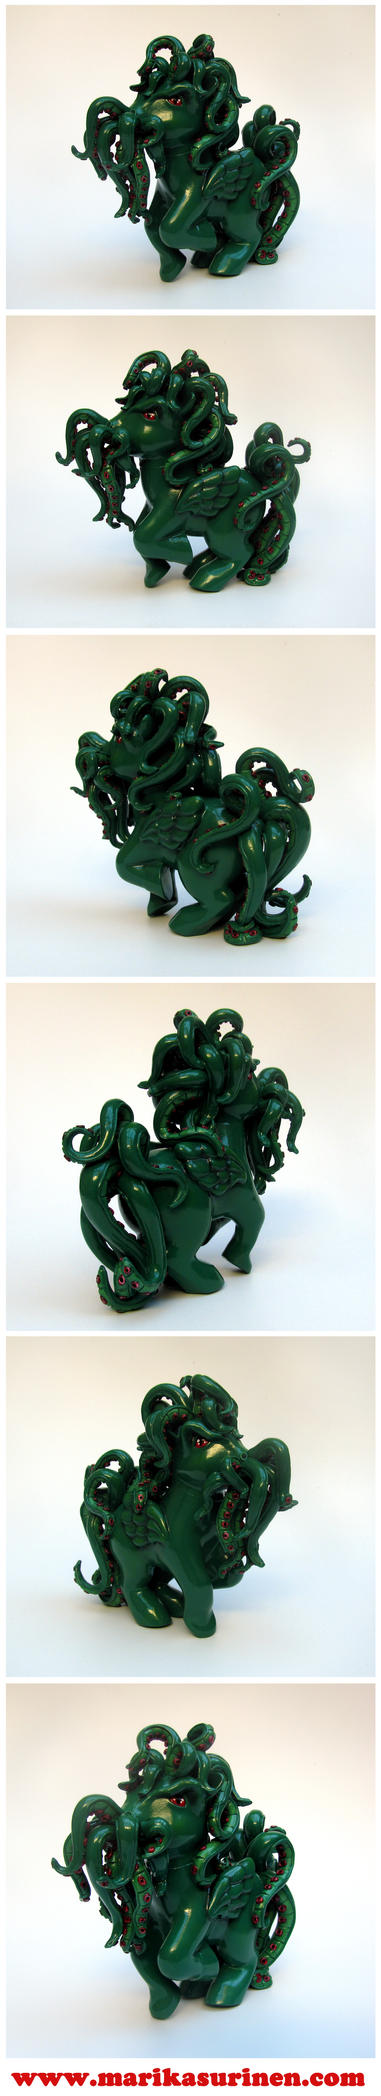 My Little Cthulhu (2nd) by Spippo